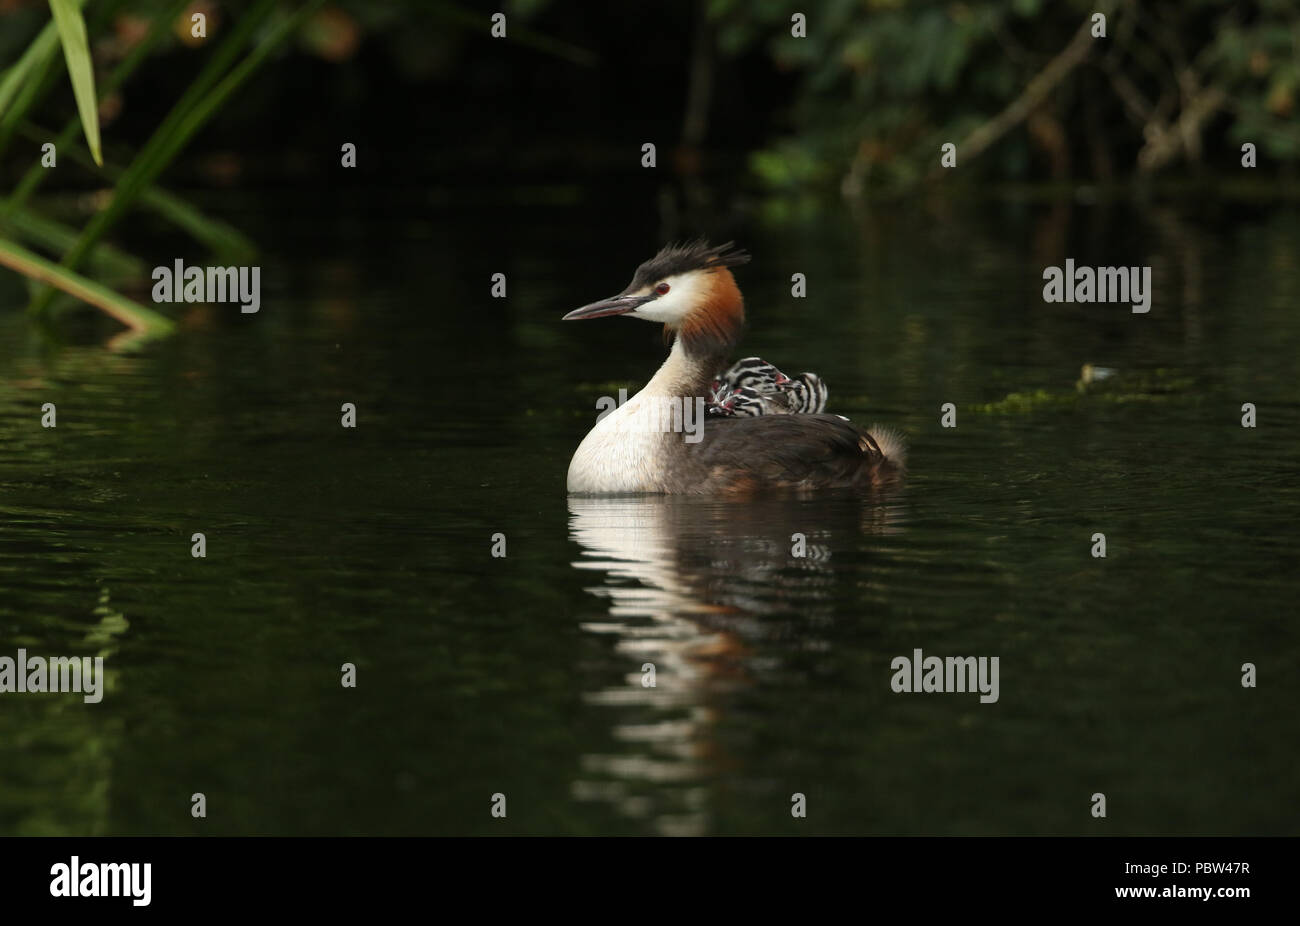 A family of stunning Great Crested Grebe (Podiceps cristatus) swimming in a river. The babies that are being carried on the parents back. - Stock Image